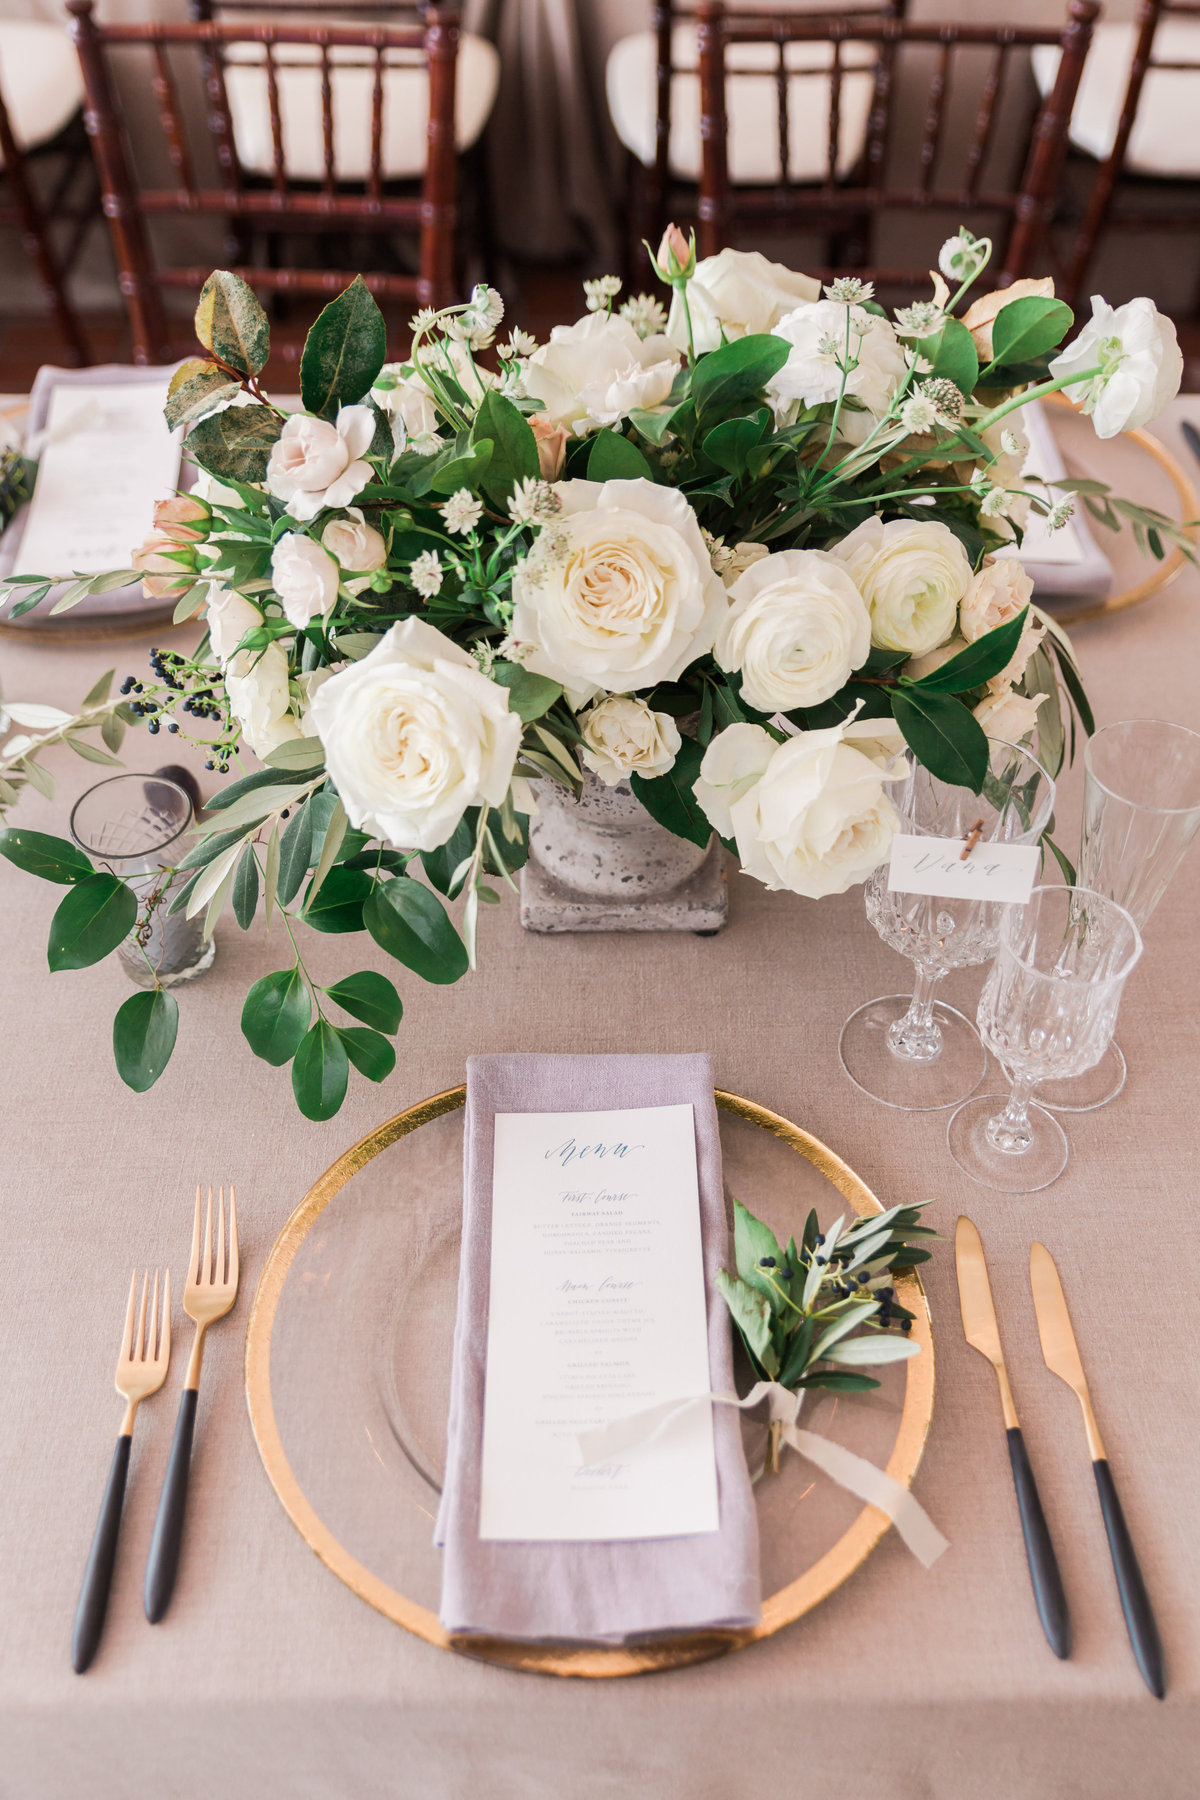 Carmel_Seaside_Chic_Wedding_Valorie_Darling_Photography - 81 of 134